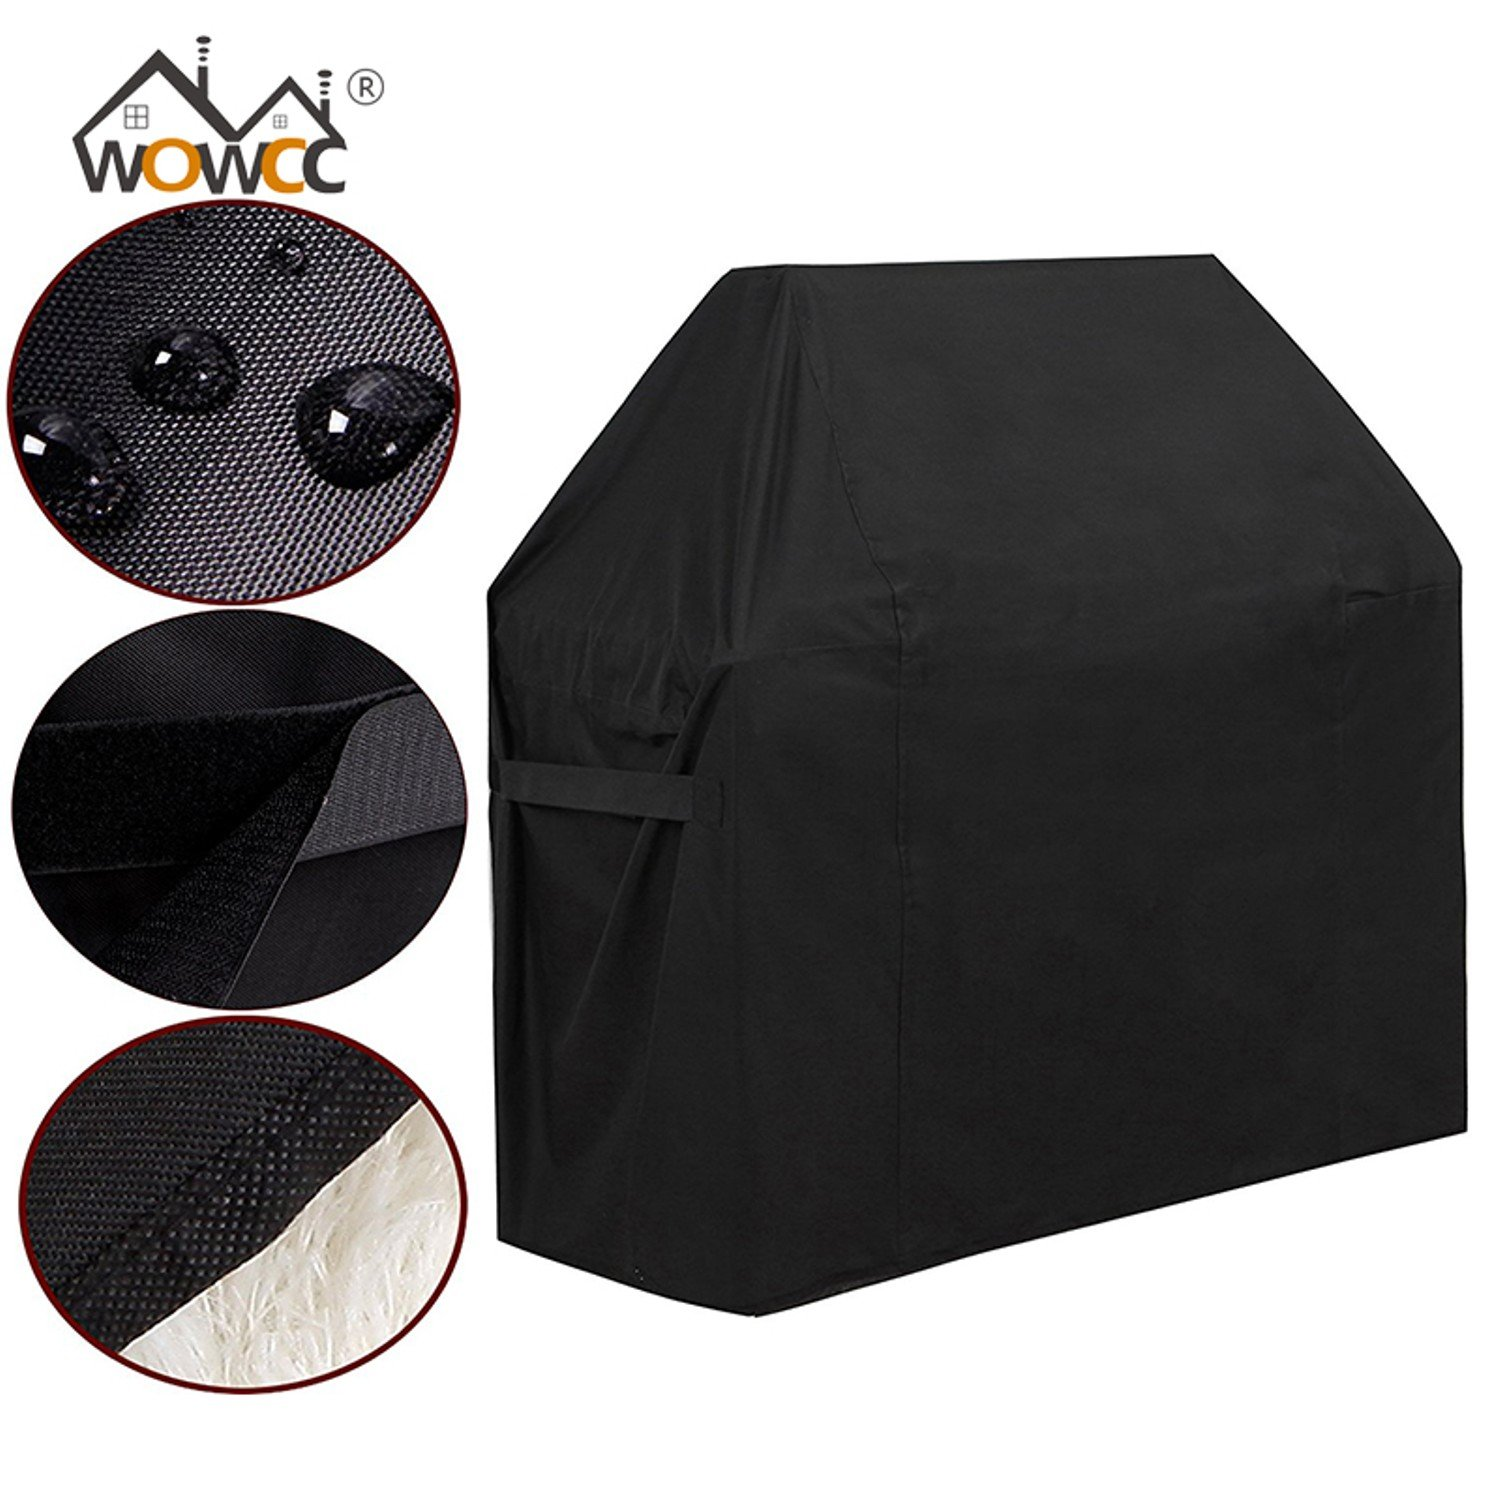 Amazon.com : WOWCC 1Pc Outdoor BBQ Grill BBQ Cover Garden Storage Waterproof Barbecue Grill Cover Barbacoa Anti Dust Protector Barbeque Accessories (Round ...